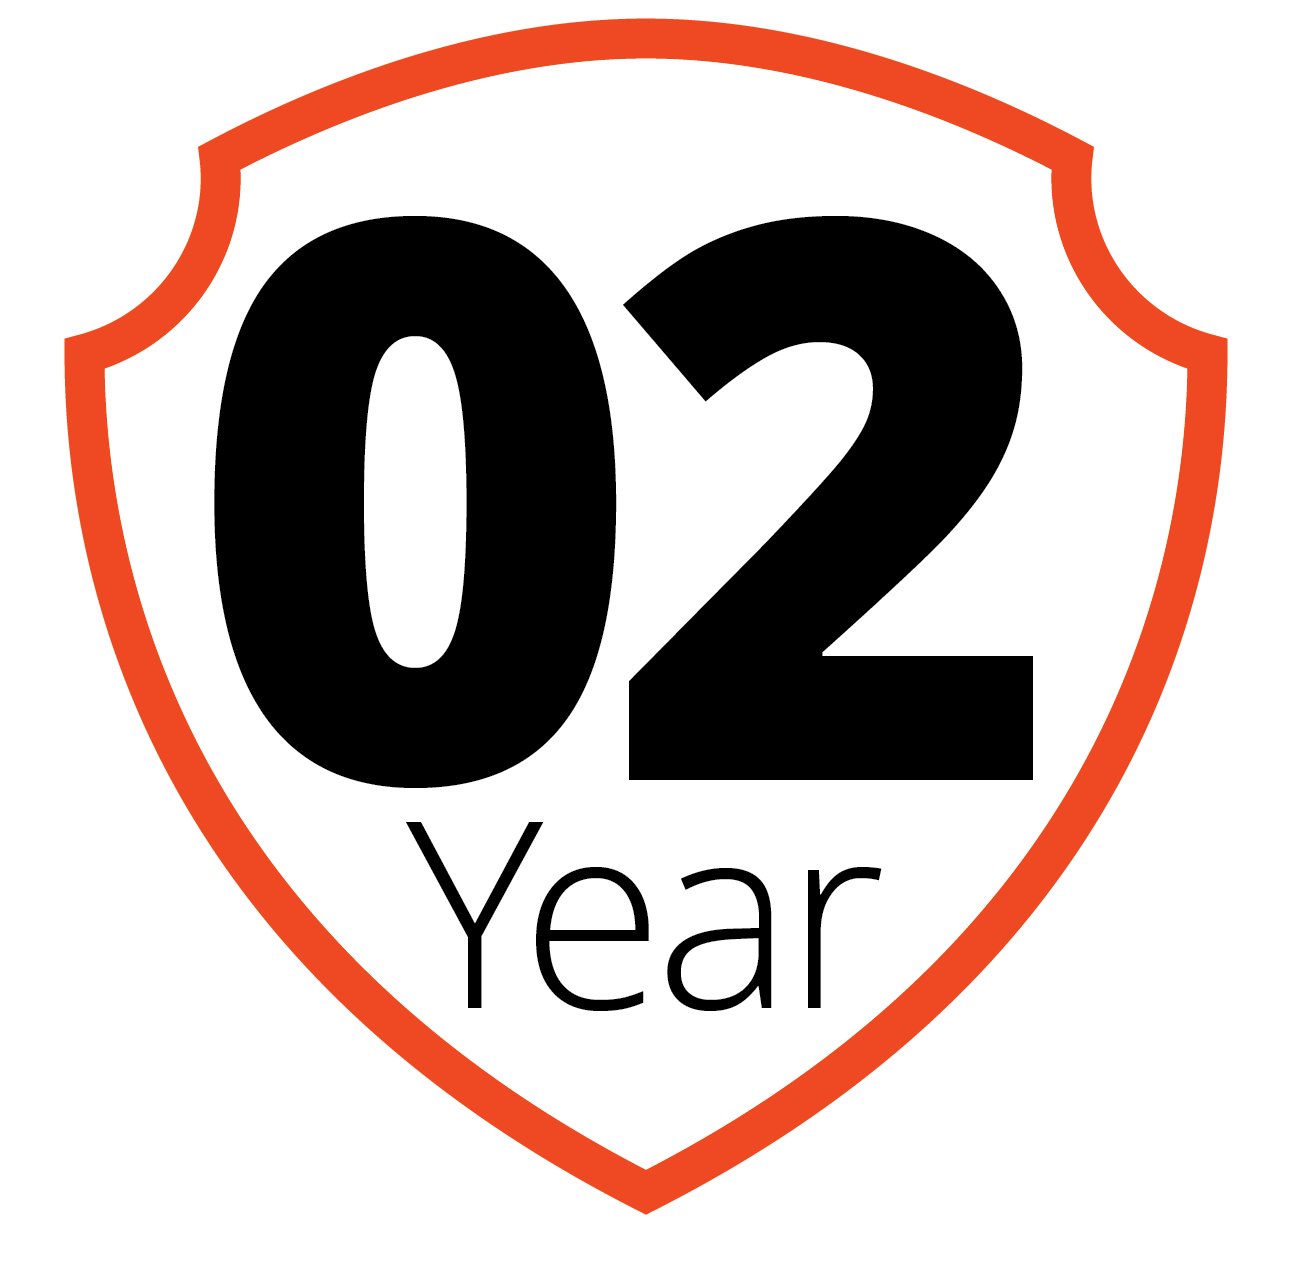 Singapore Two-Year Product Warranty Shield